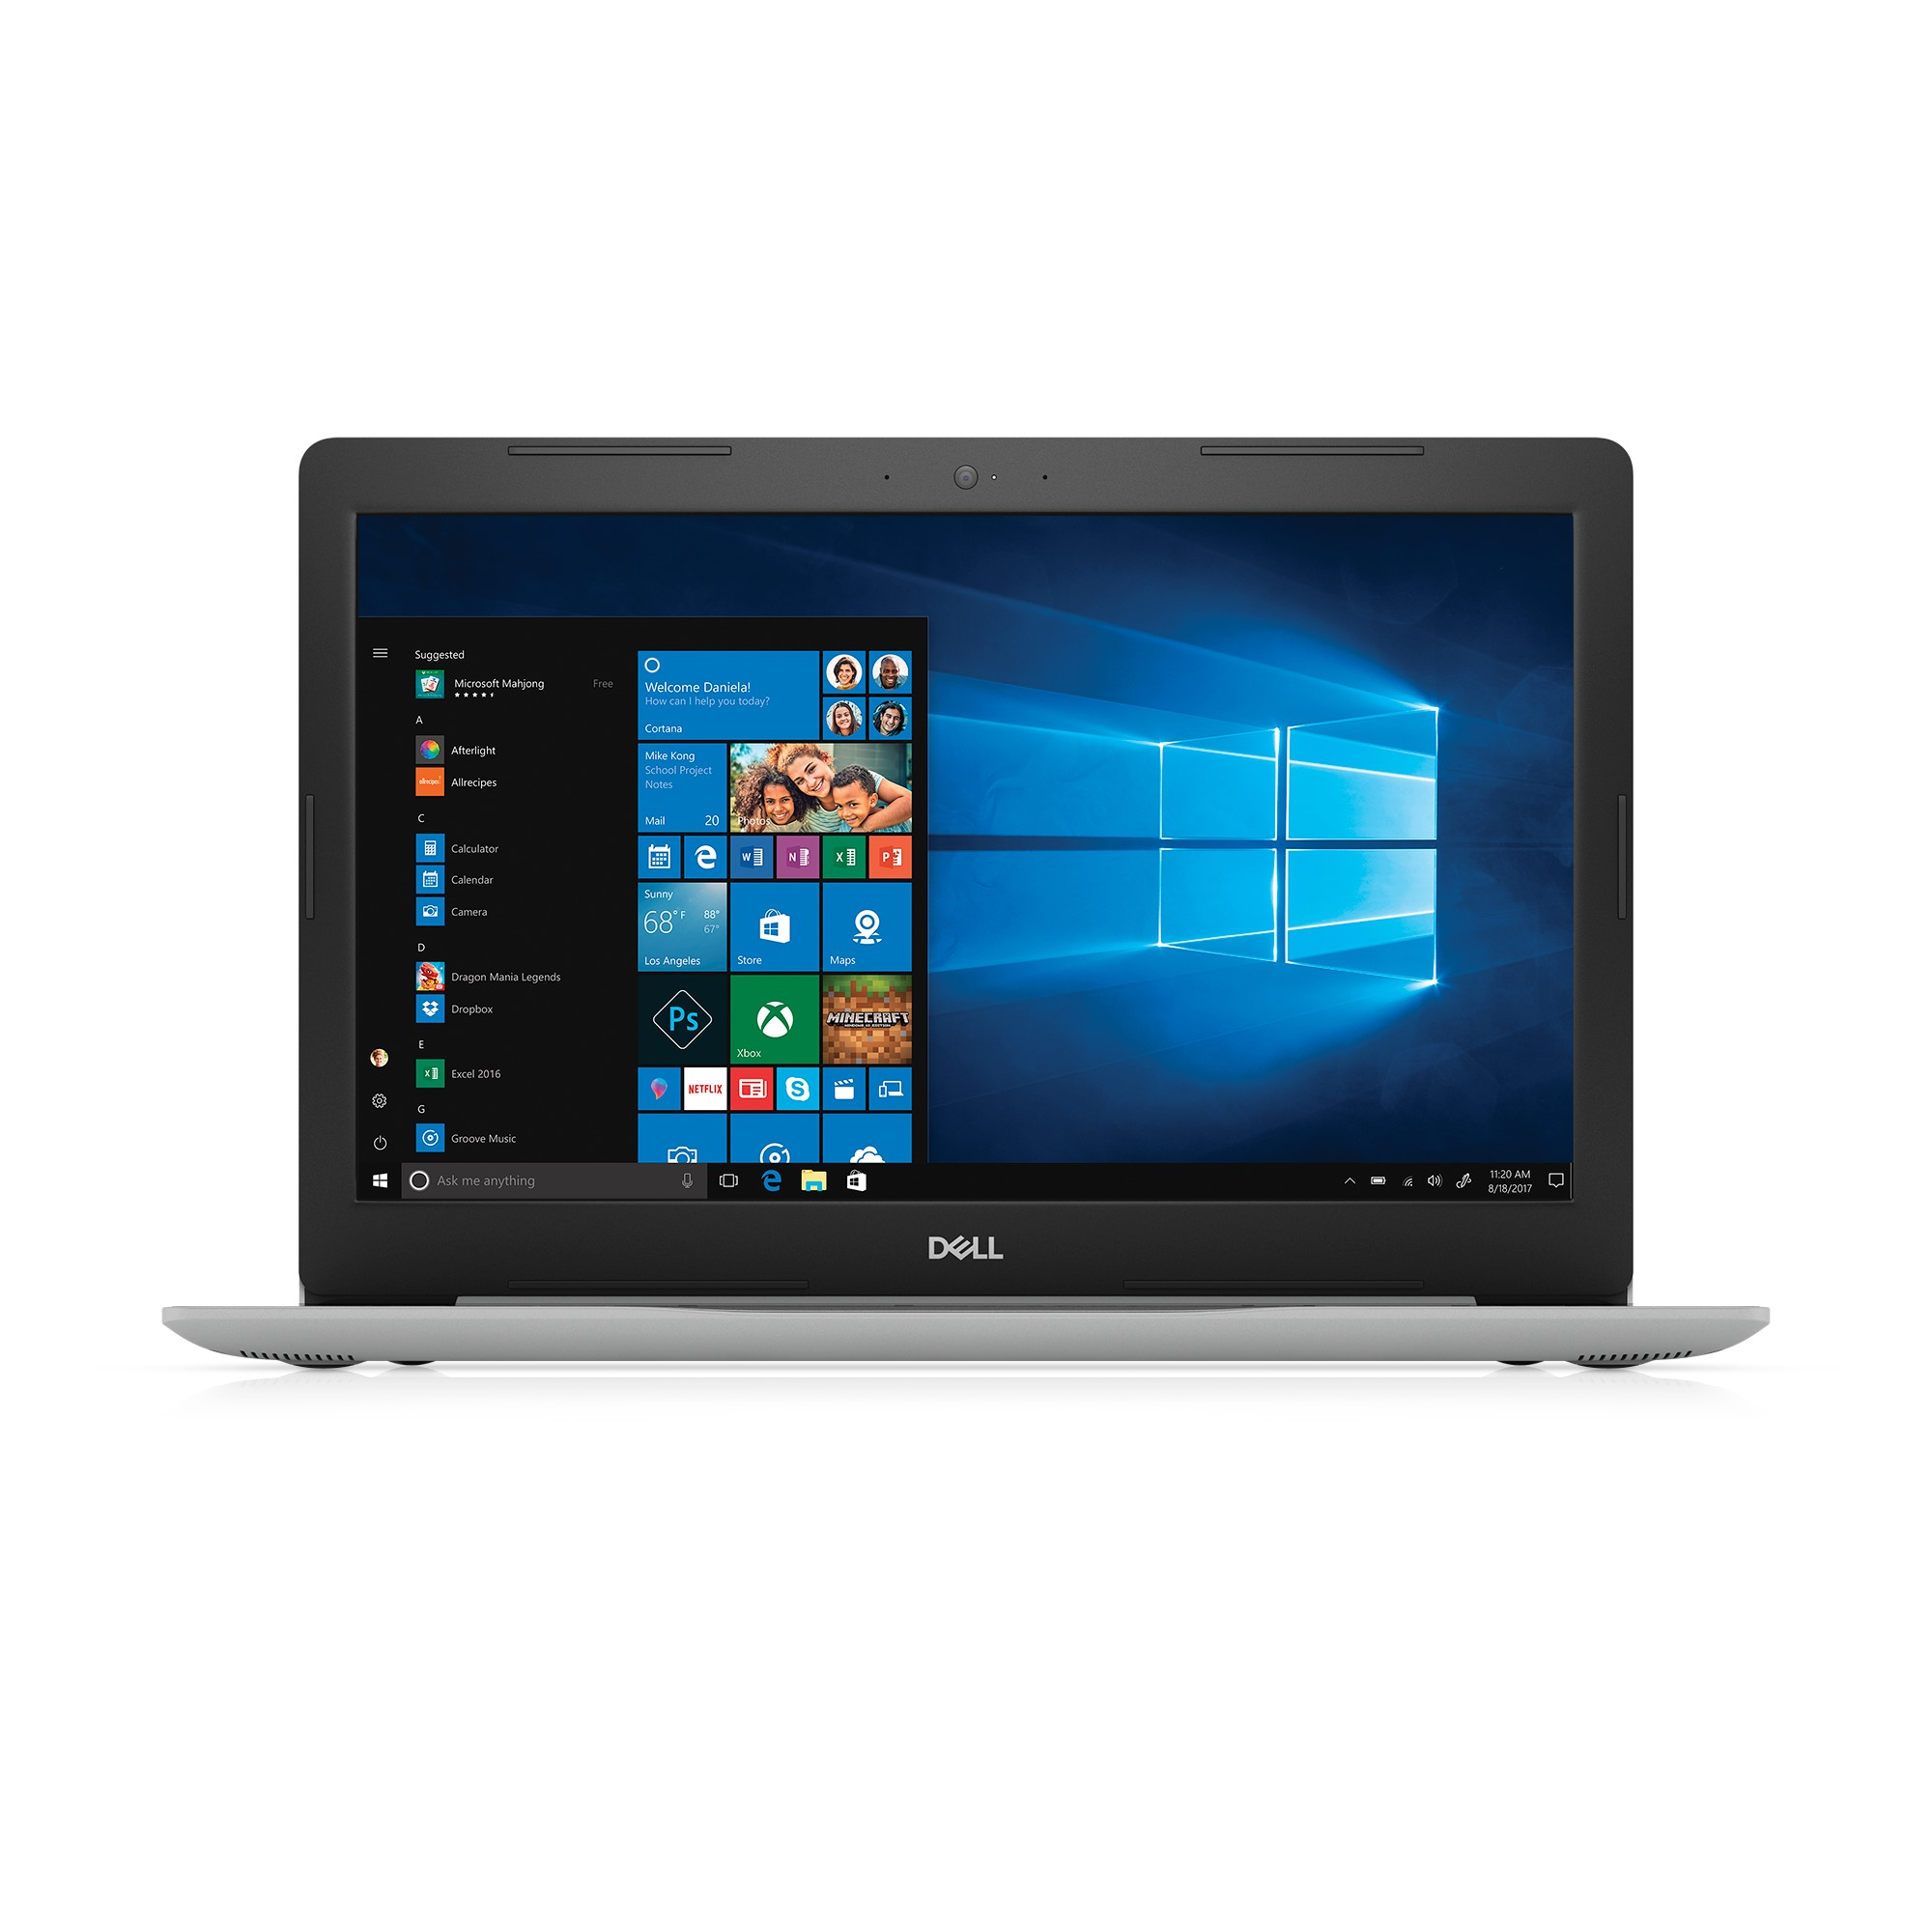 "Dell Inspiron 15 5000 Series Laptop, 15.6"" HD, Intel Core i7, 20GB Total Memory (4GB DRAM + 16GB Intel Optane Memory,) 1 TB HDD, Intel UHD Graphics 620, i5570-7987SLV"